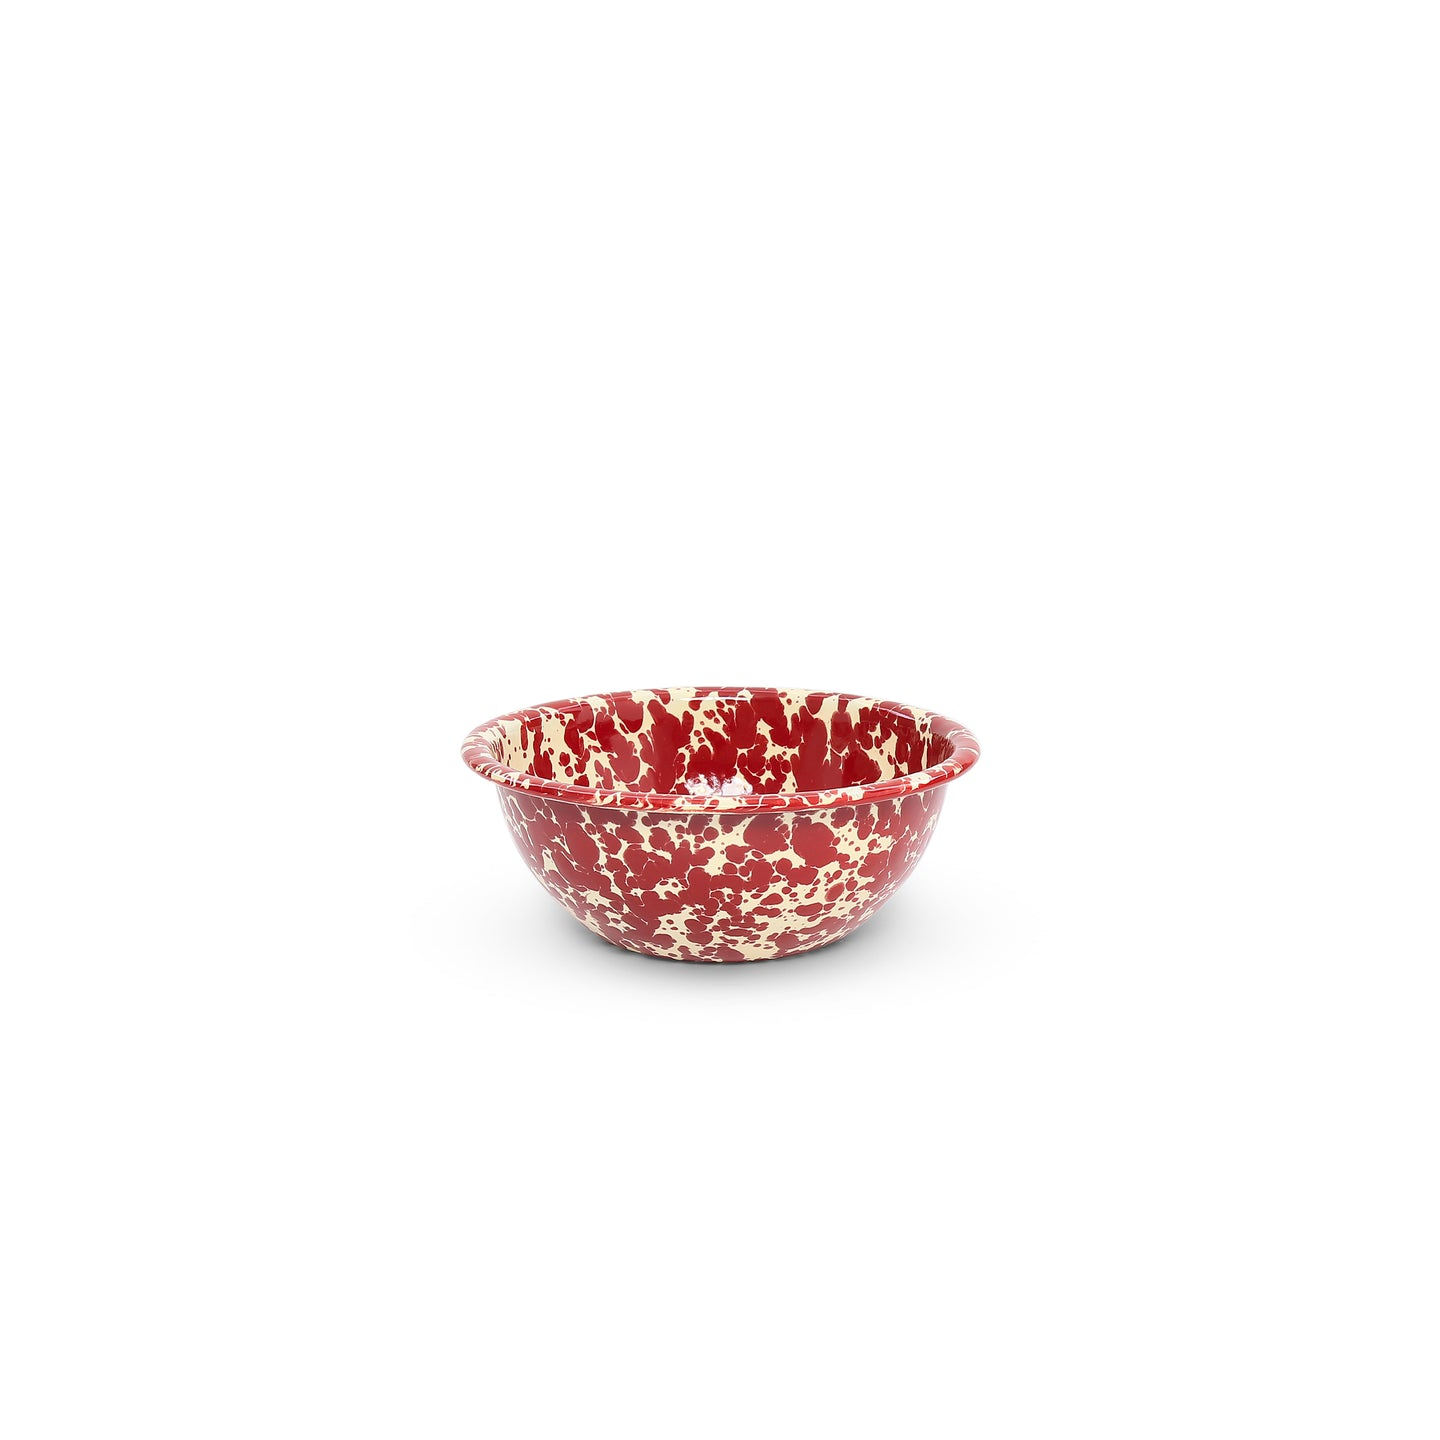 20oz Enamel Cereal Bowl